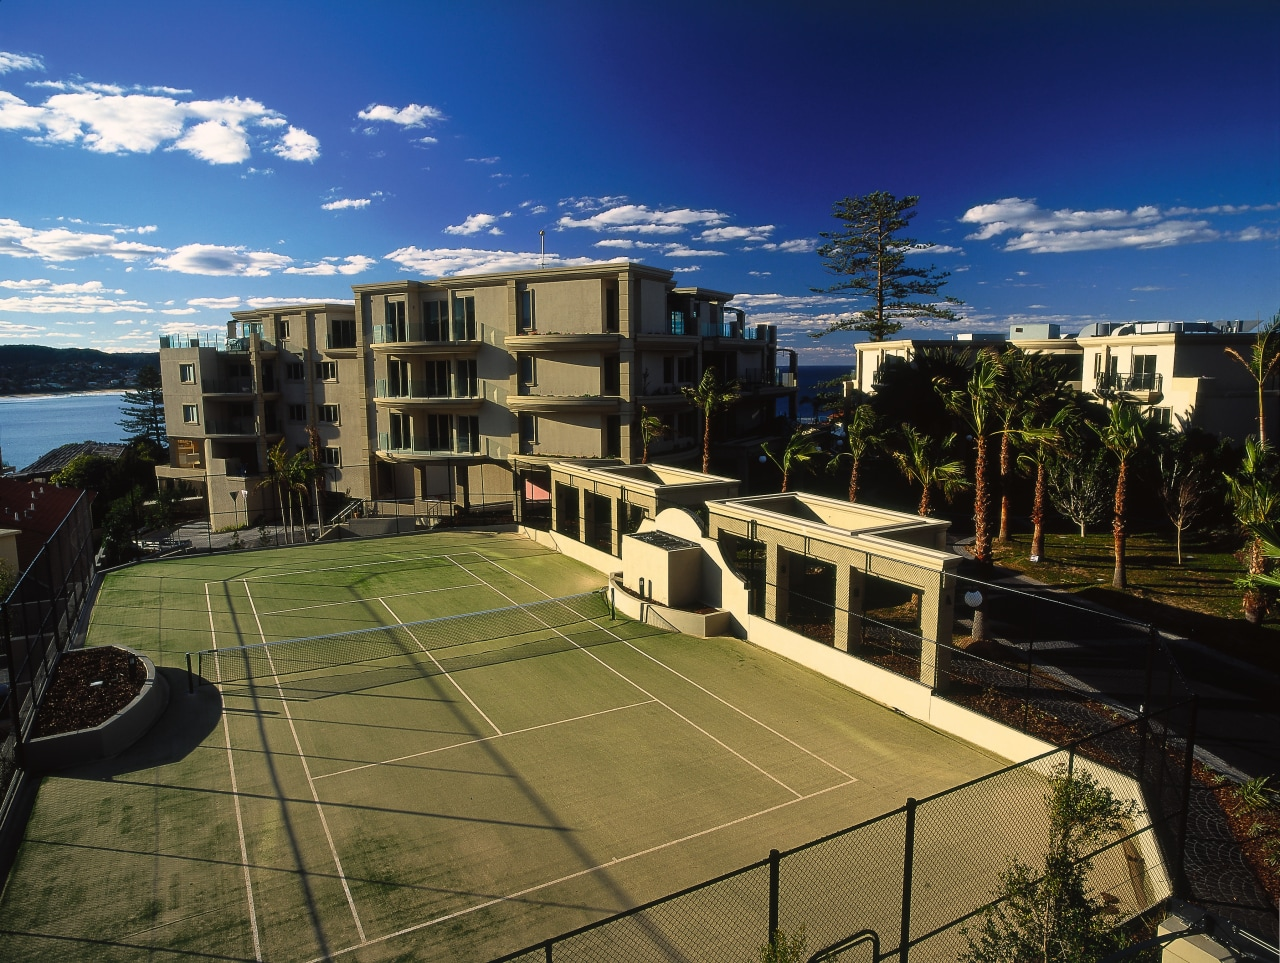 exterior view of tenis courts apartment, architecture, building, campus, city, condominium, corporate headquarters, estate, mixed use, neighbourhood, property, real estate, residential area, roof, sky, structure, suburb, urban area, urban design, brown, black, blue